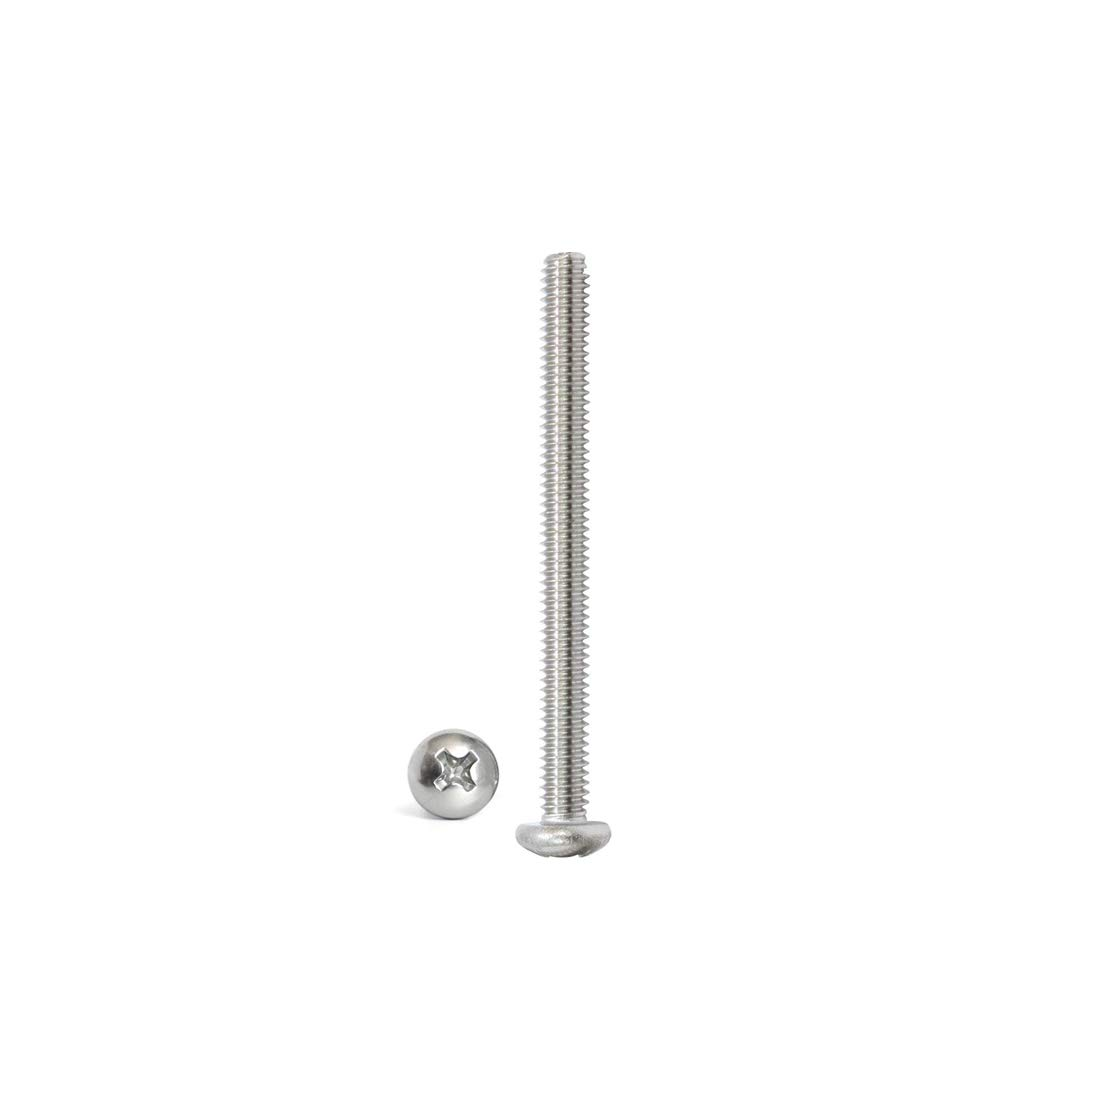 304 Stainless Steel Button Head Bolts Phillips Drive Adiyer 30 Pack #8-32 UNC x 3//4 Inch Machine Screws for Cabinet Drawer Knob Pull Handle